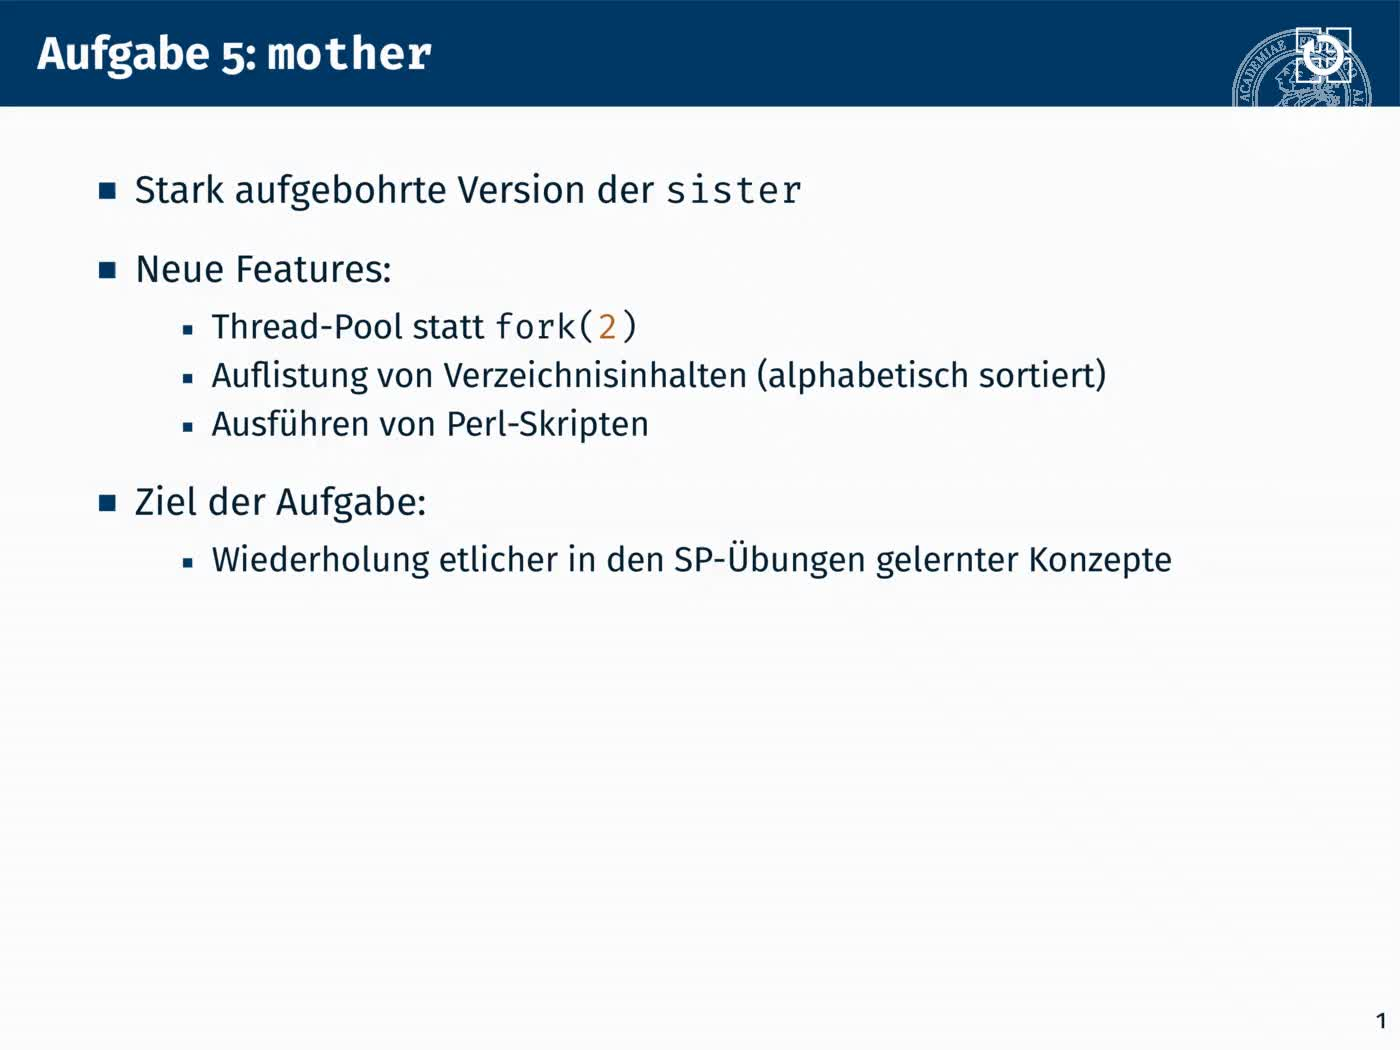 6.3 Mehrfädige Programme: mother preview image